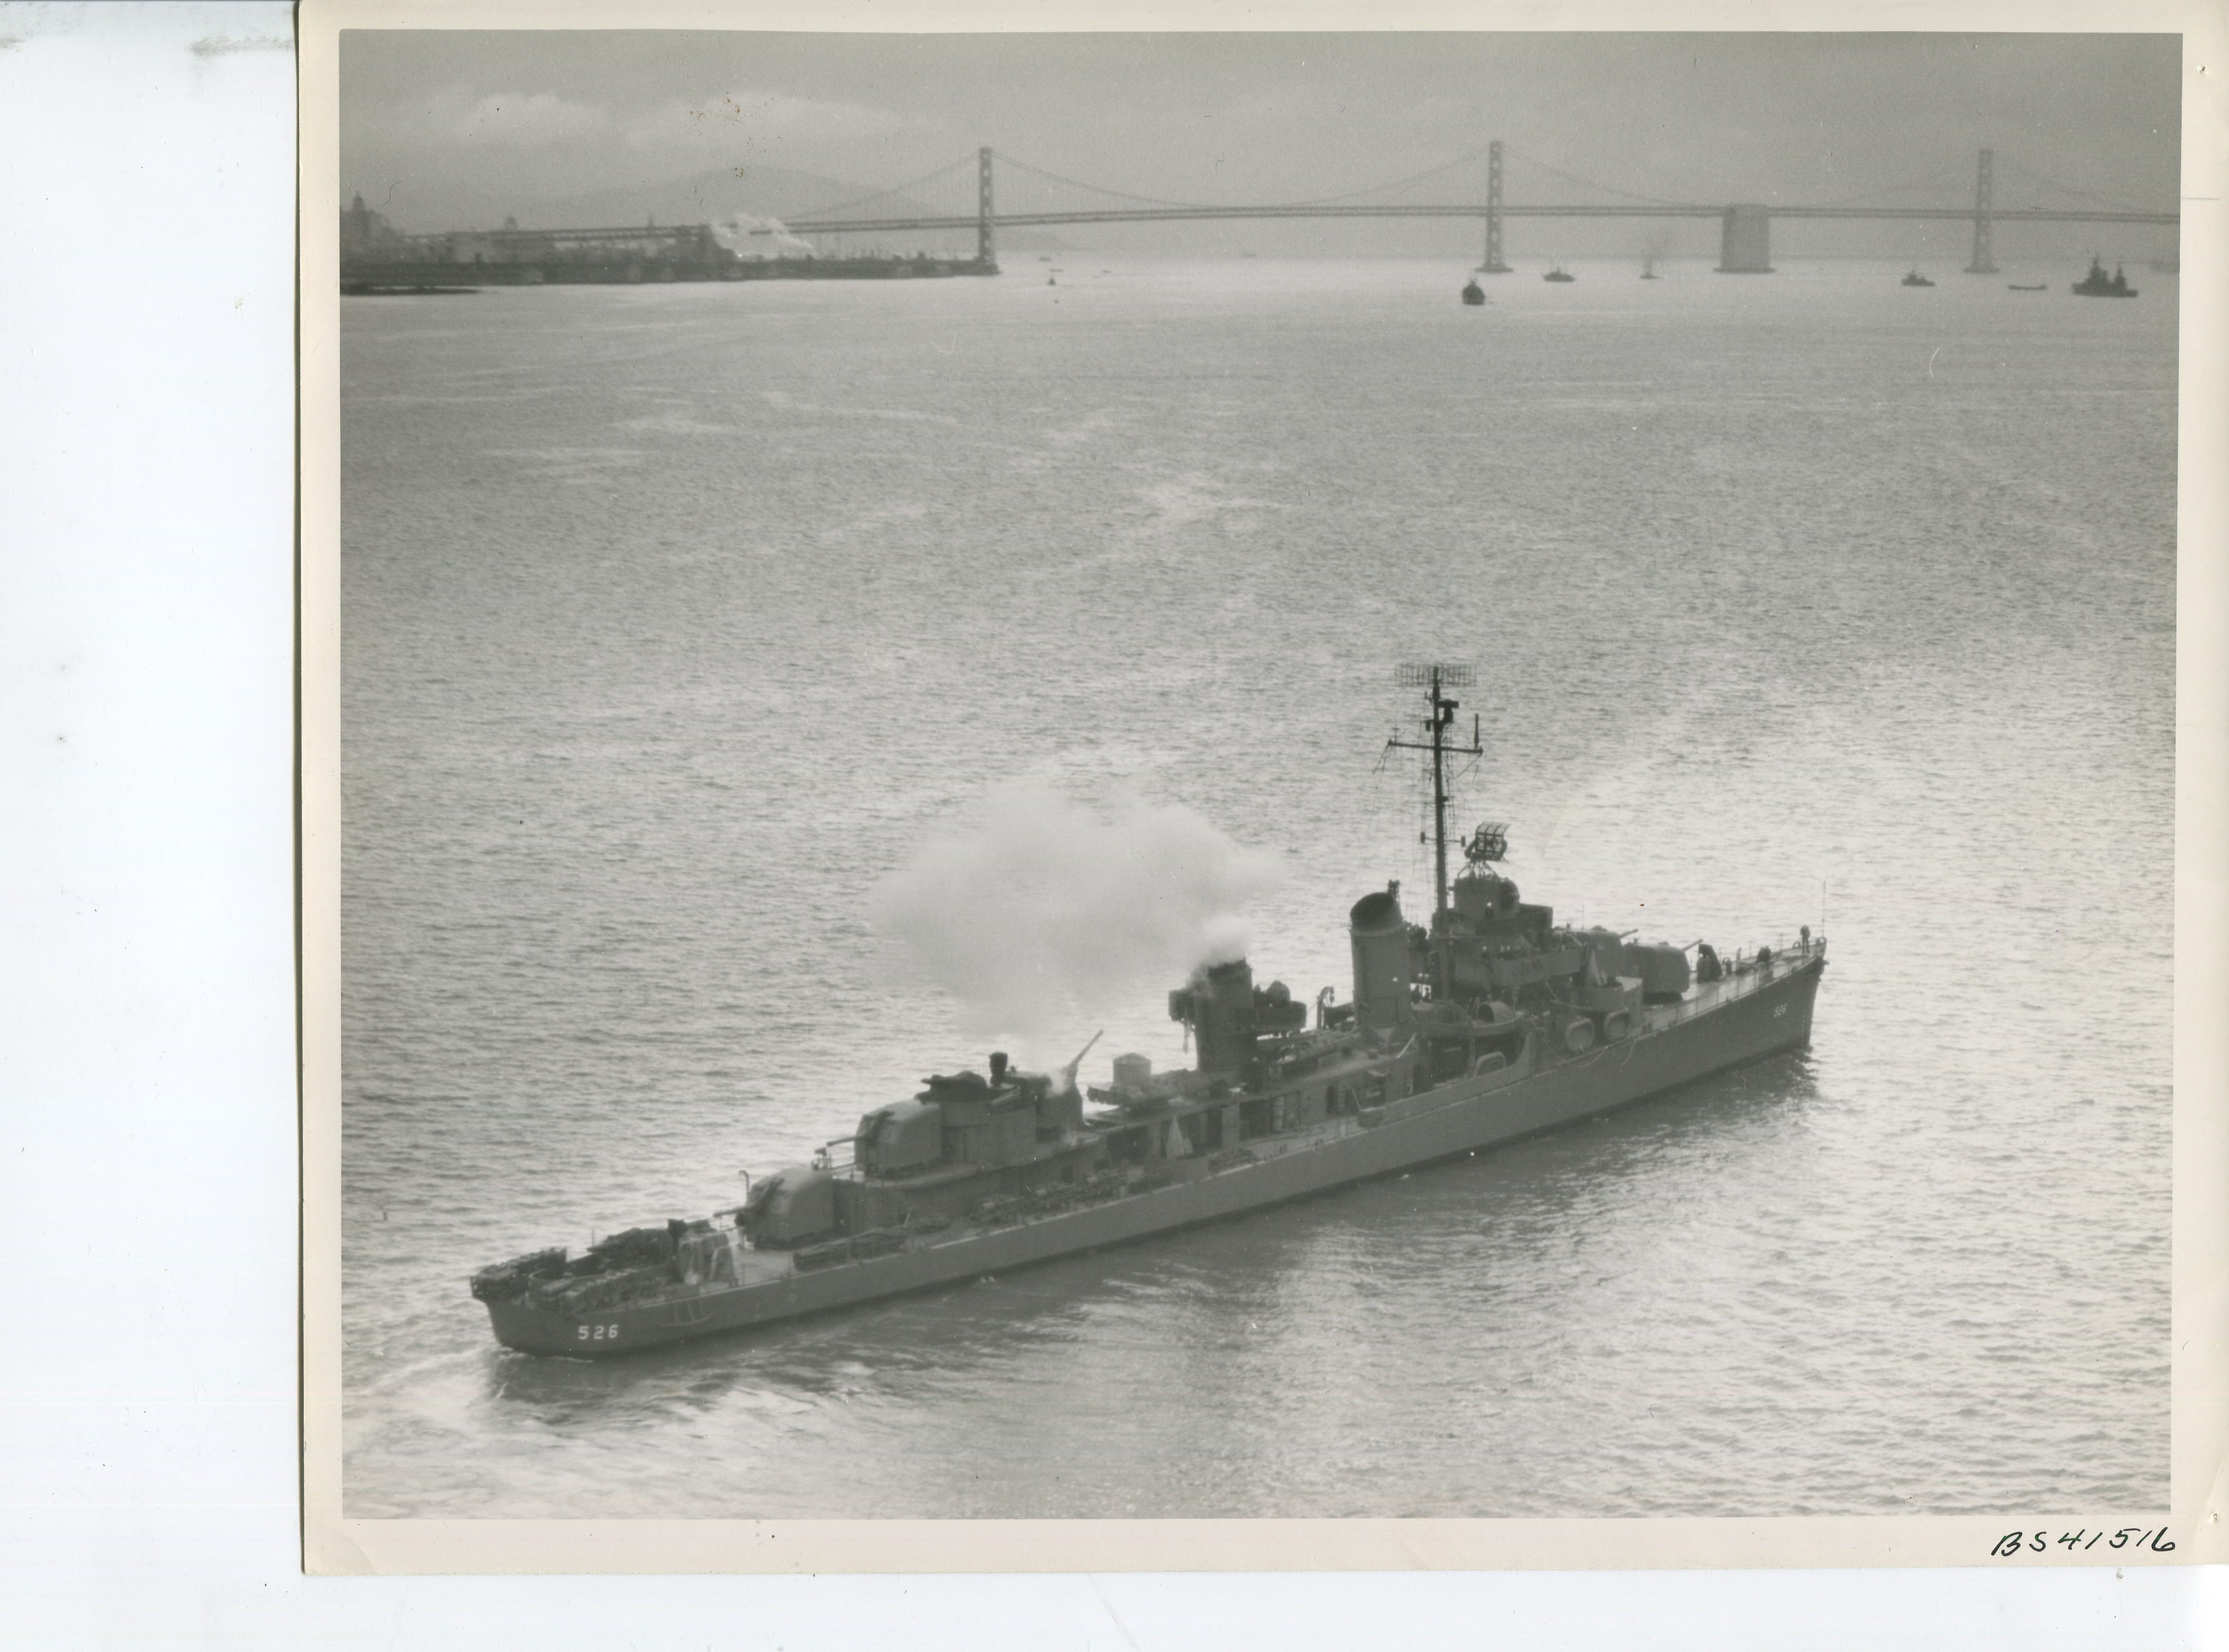 After the USS Abner Read lost its stern in the Bering Sea, it was repaired and went on to continue fighting in the war until it was destroyed in 1944.